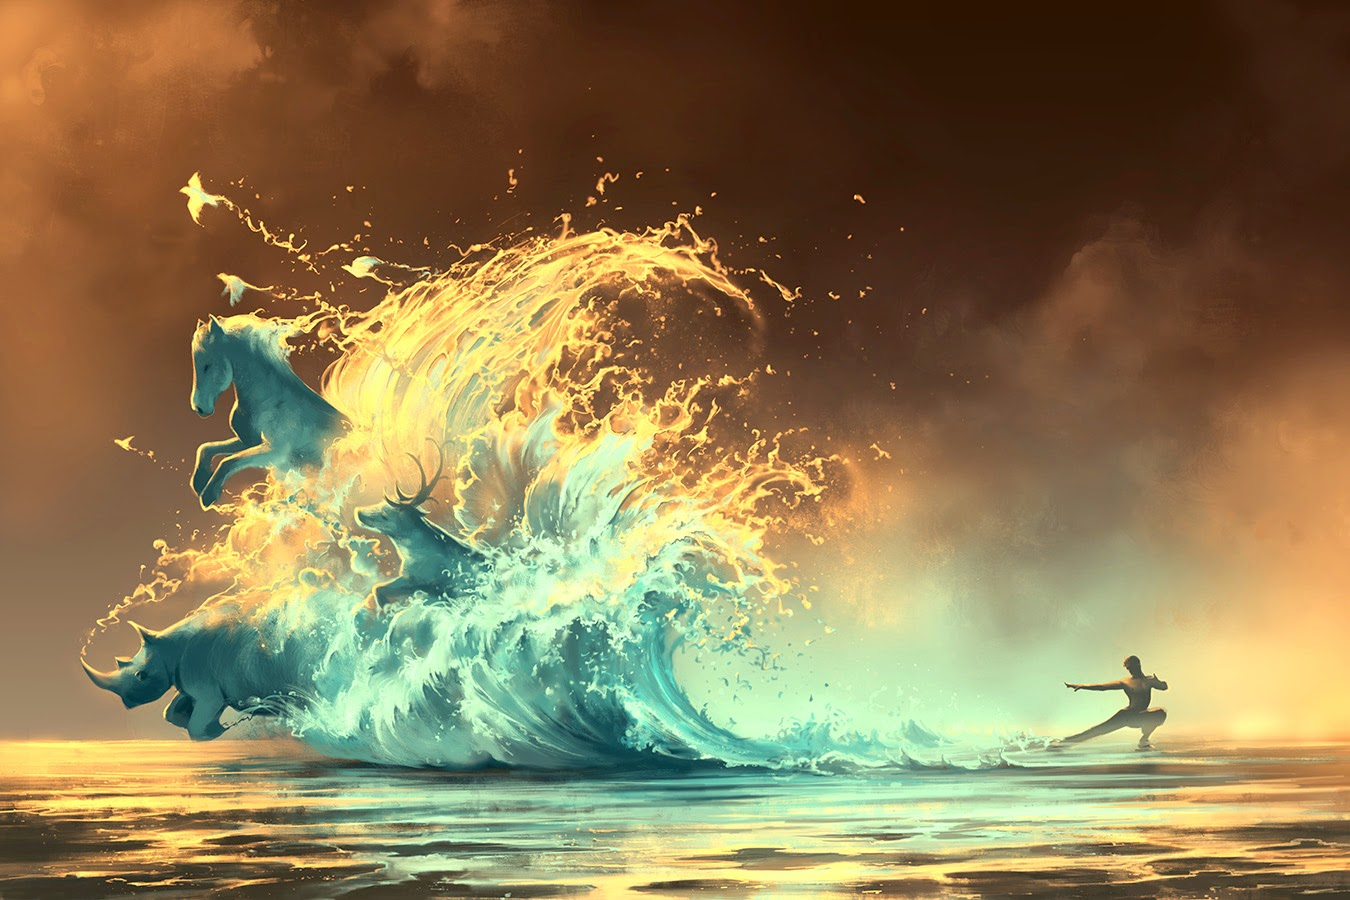 27-Mana-Tide-Rolando-Cyril-aquasixio-Surreal-Fantasy-Otherworldly-Art-www-designstack-co